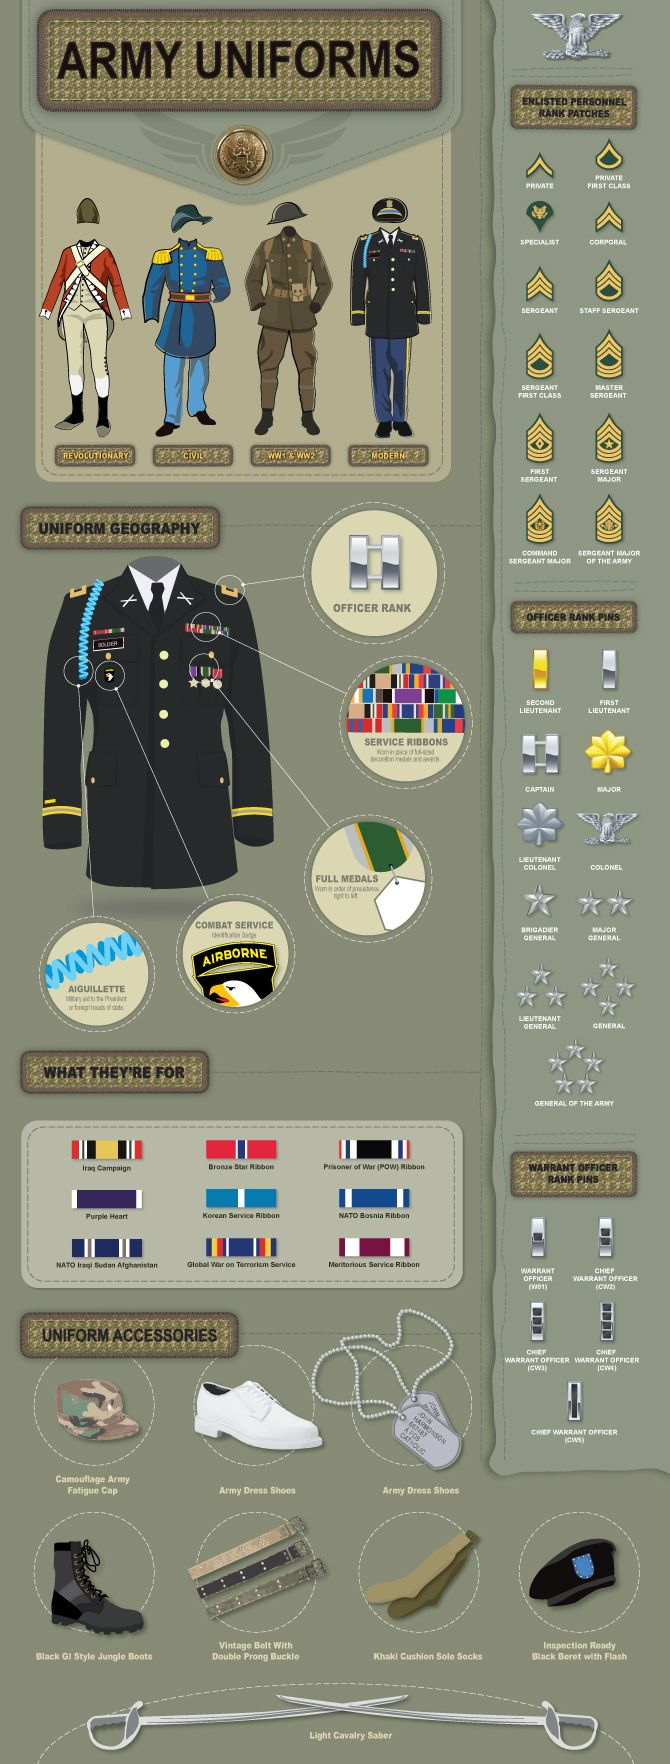 Us Army Uniforms Infographic Us Army Uniforms Army Military Ranks